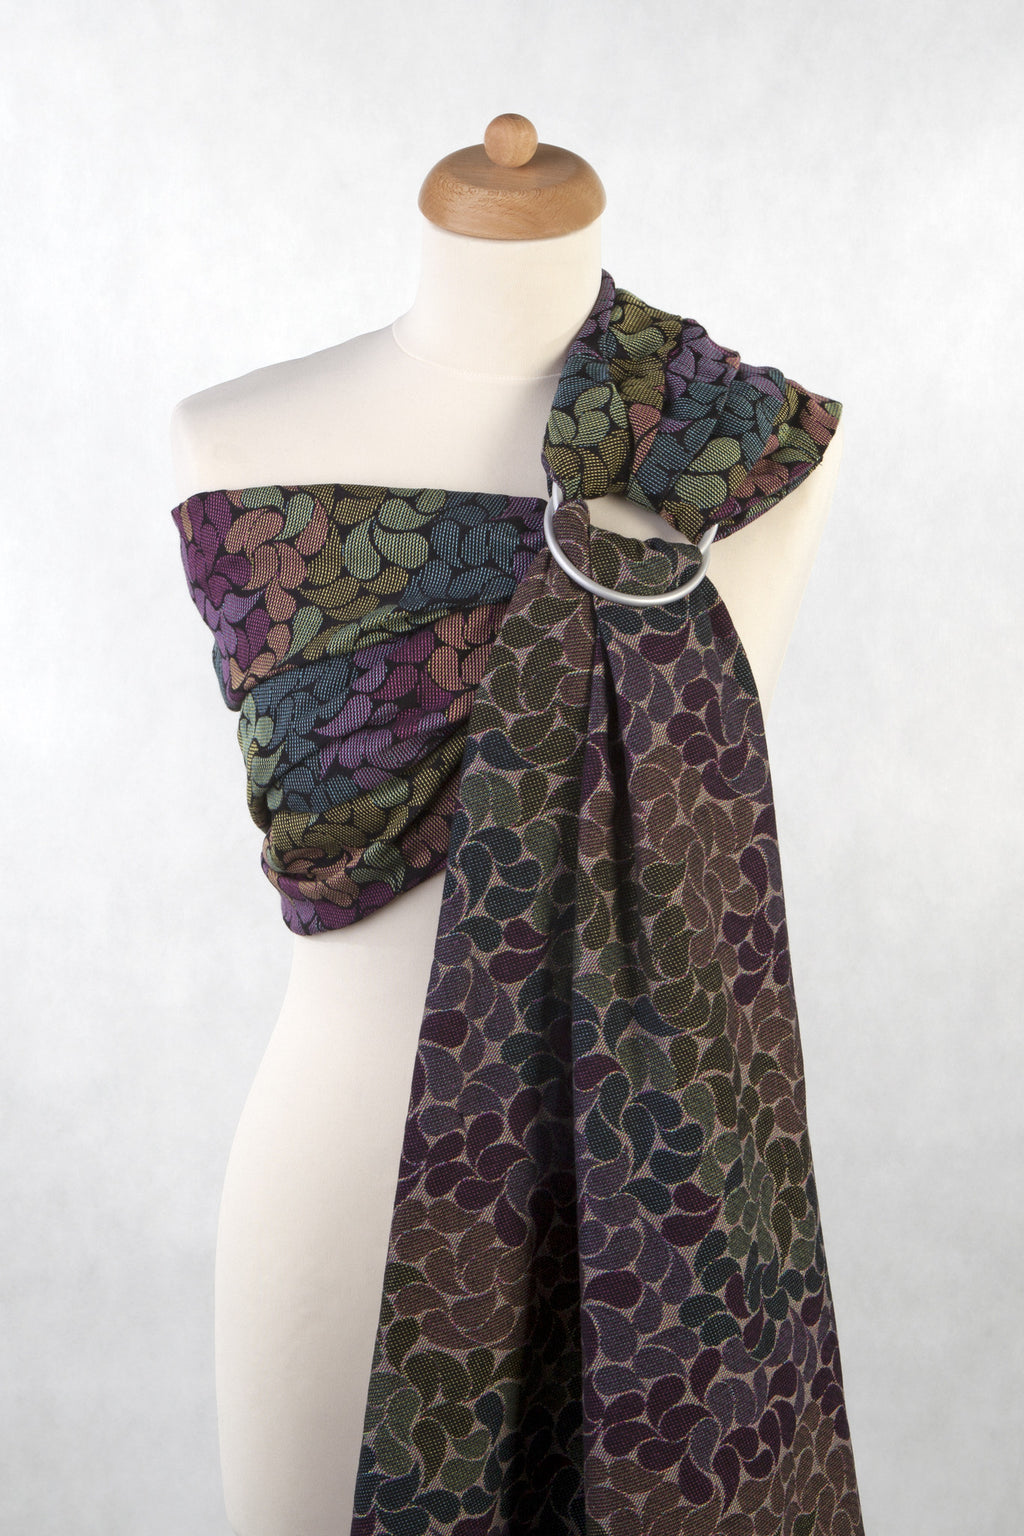 Lenny Lamb Ring Sling - Colours of Rain - Slings and Things